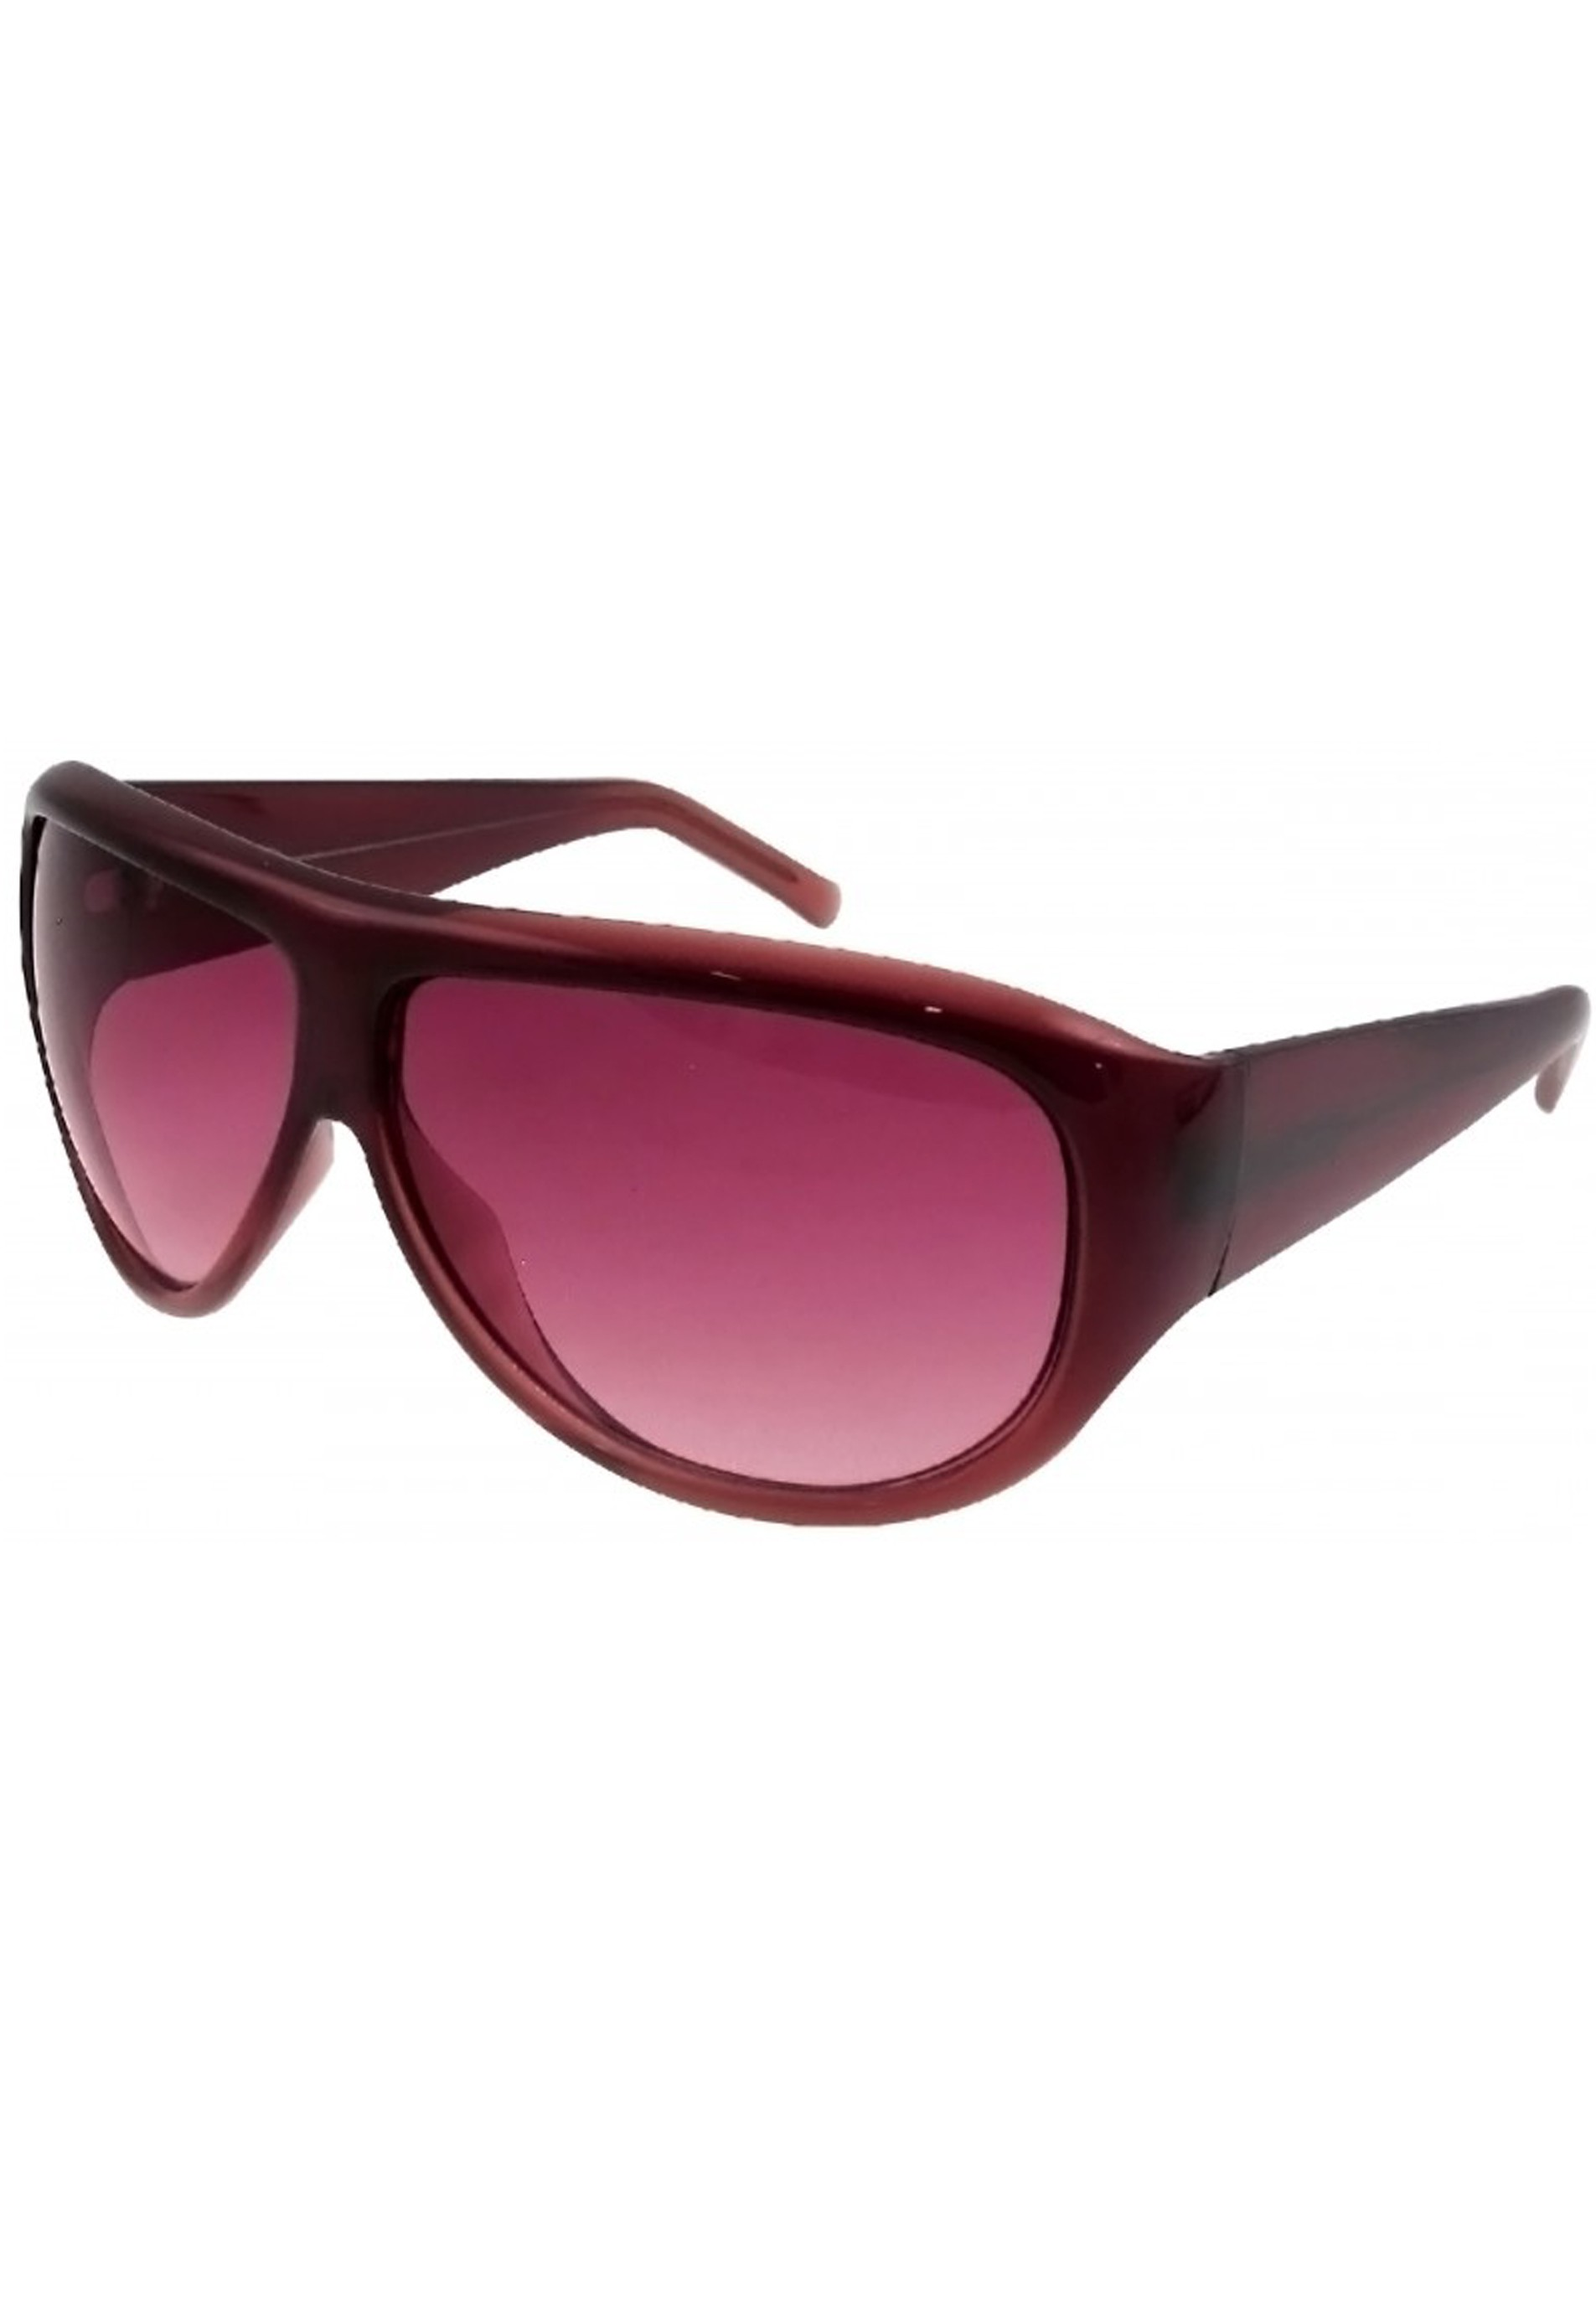 Rot/Pink farbene Sonnenbrille